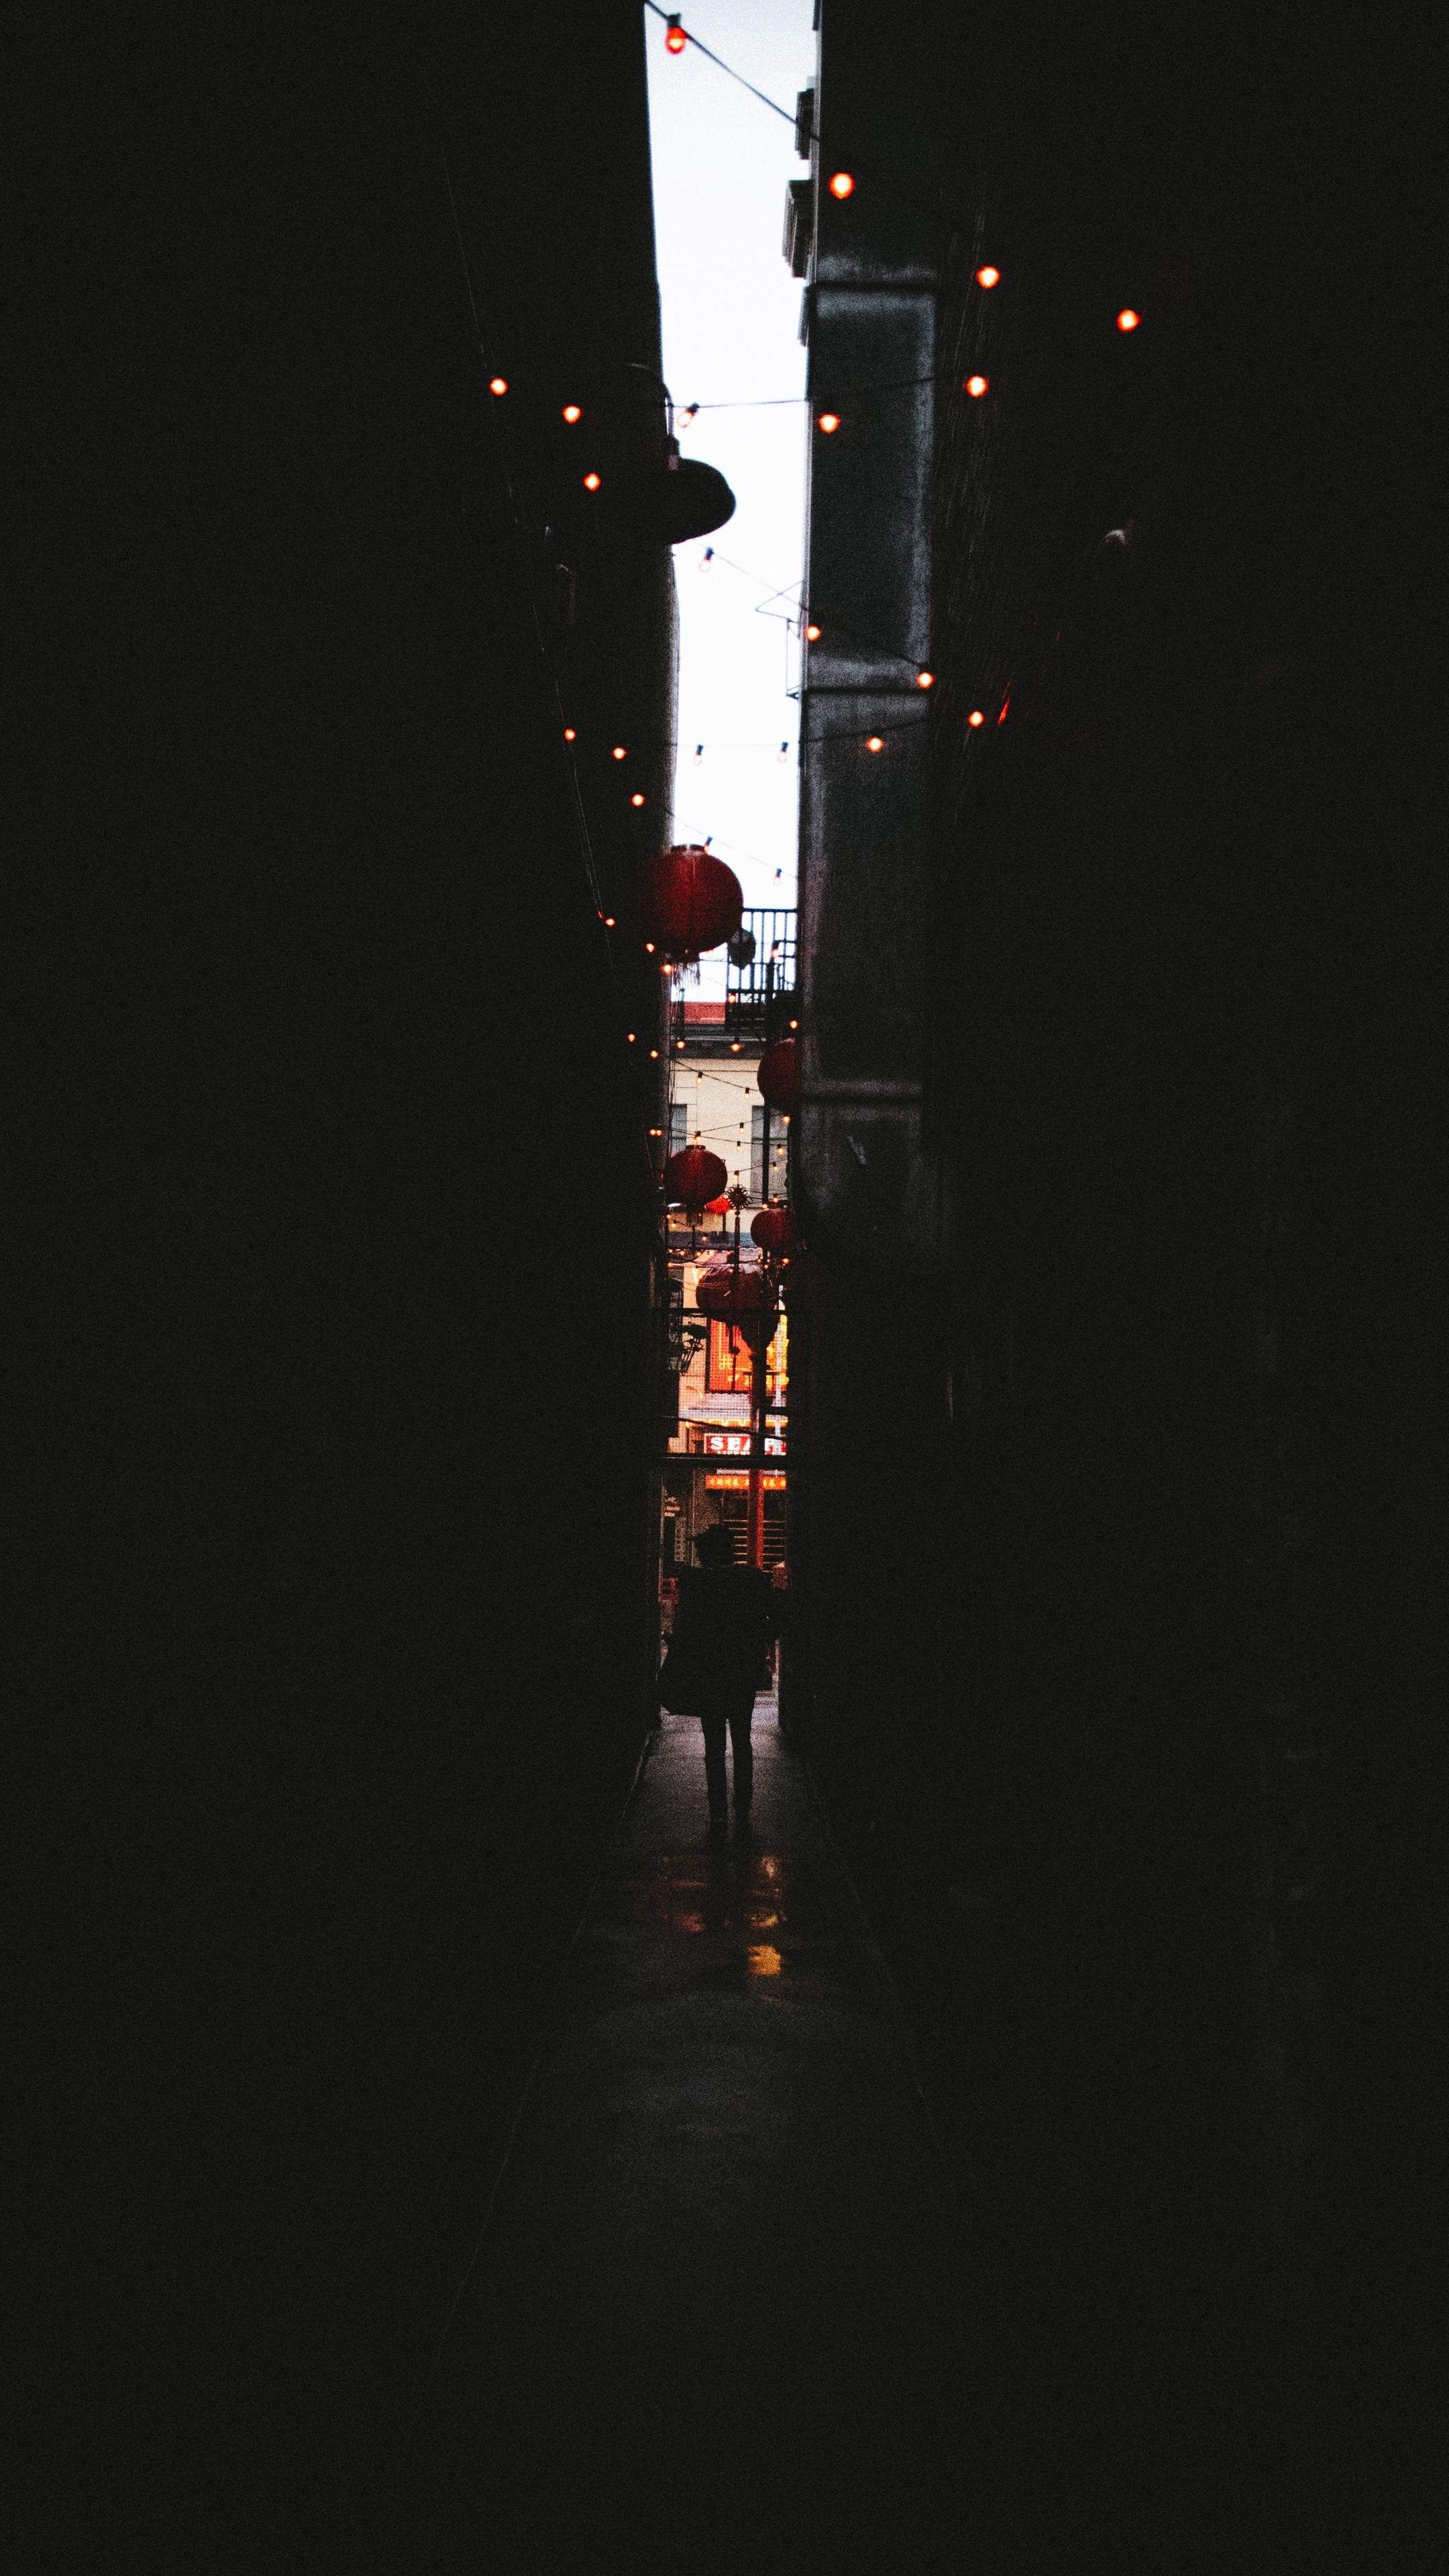 Download Iphone Xs Iphone Xs Max Iphone Xr Hd Wallpapers Alleyway Dark Silhouette Garland Lanterns Black Wallpaper Iphone Wallpaper Wallpapers Dark Dark wallpaper iphone xr